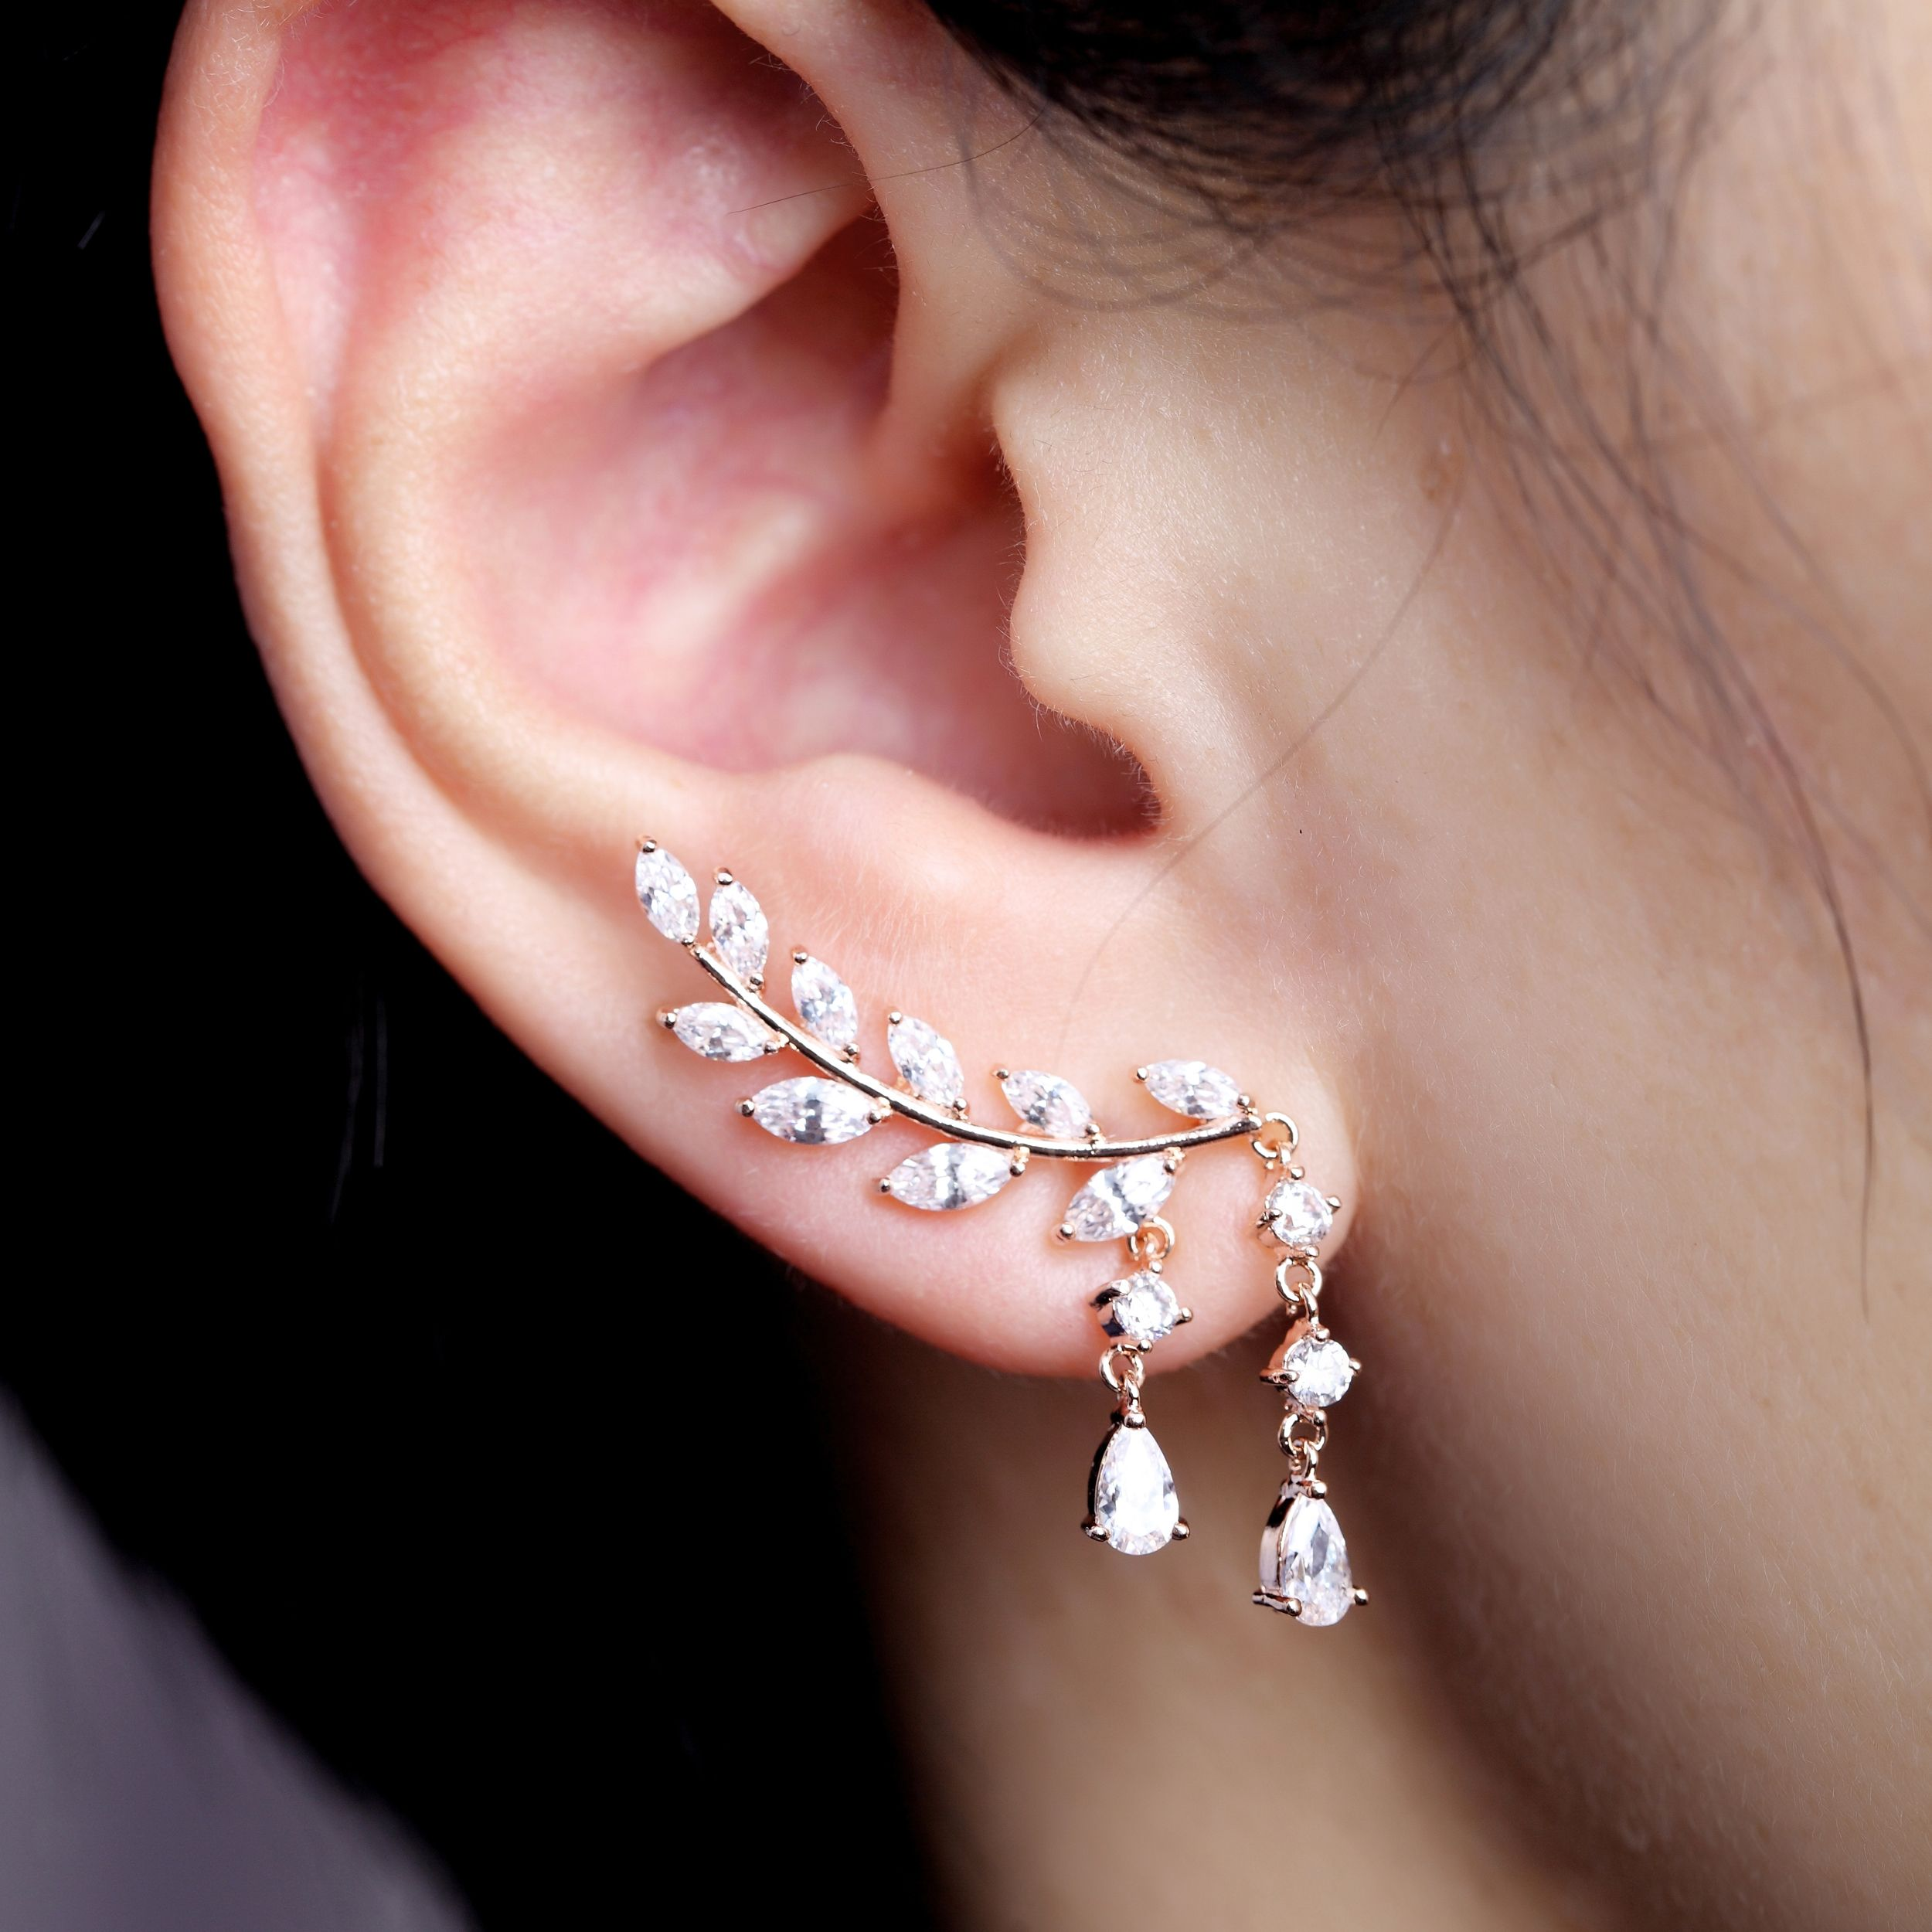 Ear lobe piercing names  Beautiful Rose Gold Earrings Best Gifts for Her  fashion